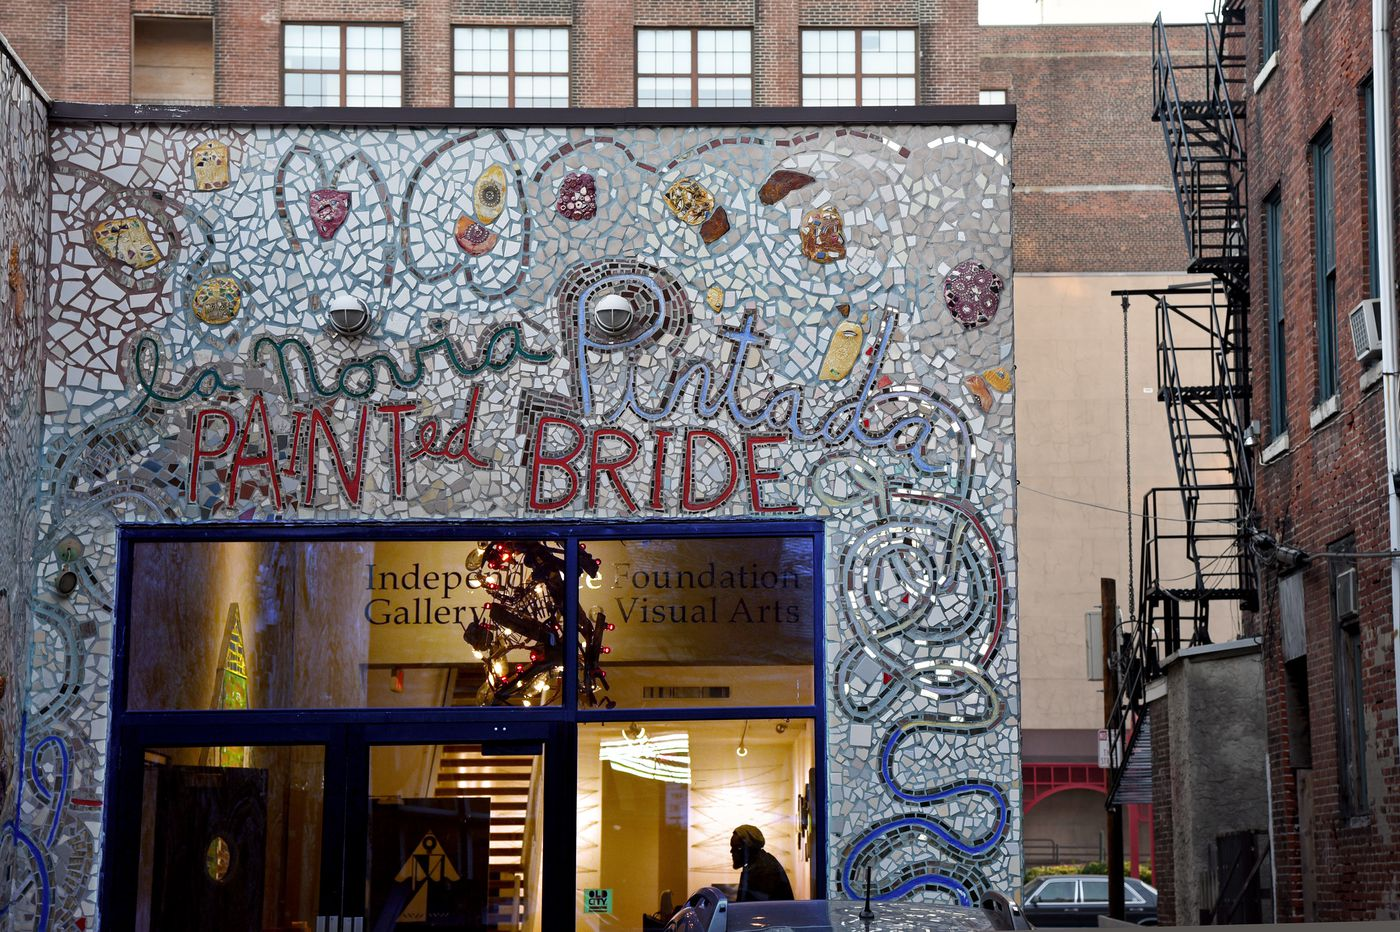 To survive, Painted Bride doesn't need historic designation; it needs money from the building sale | Opinion